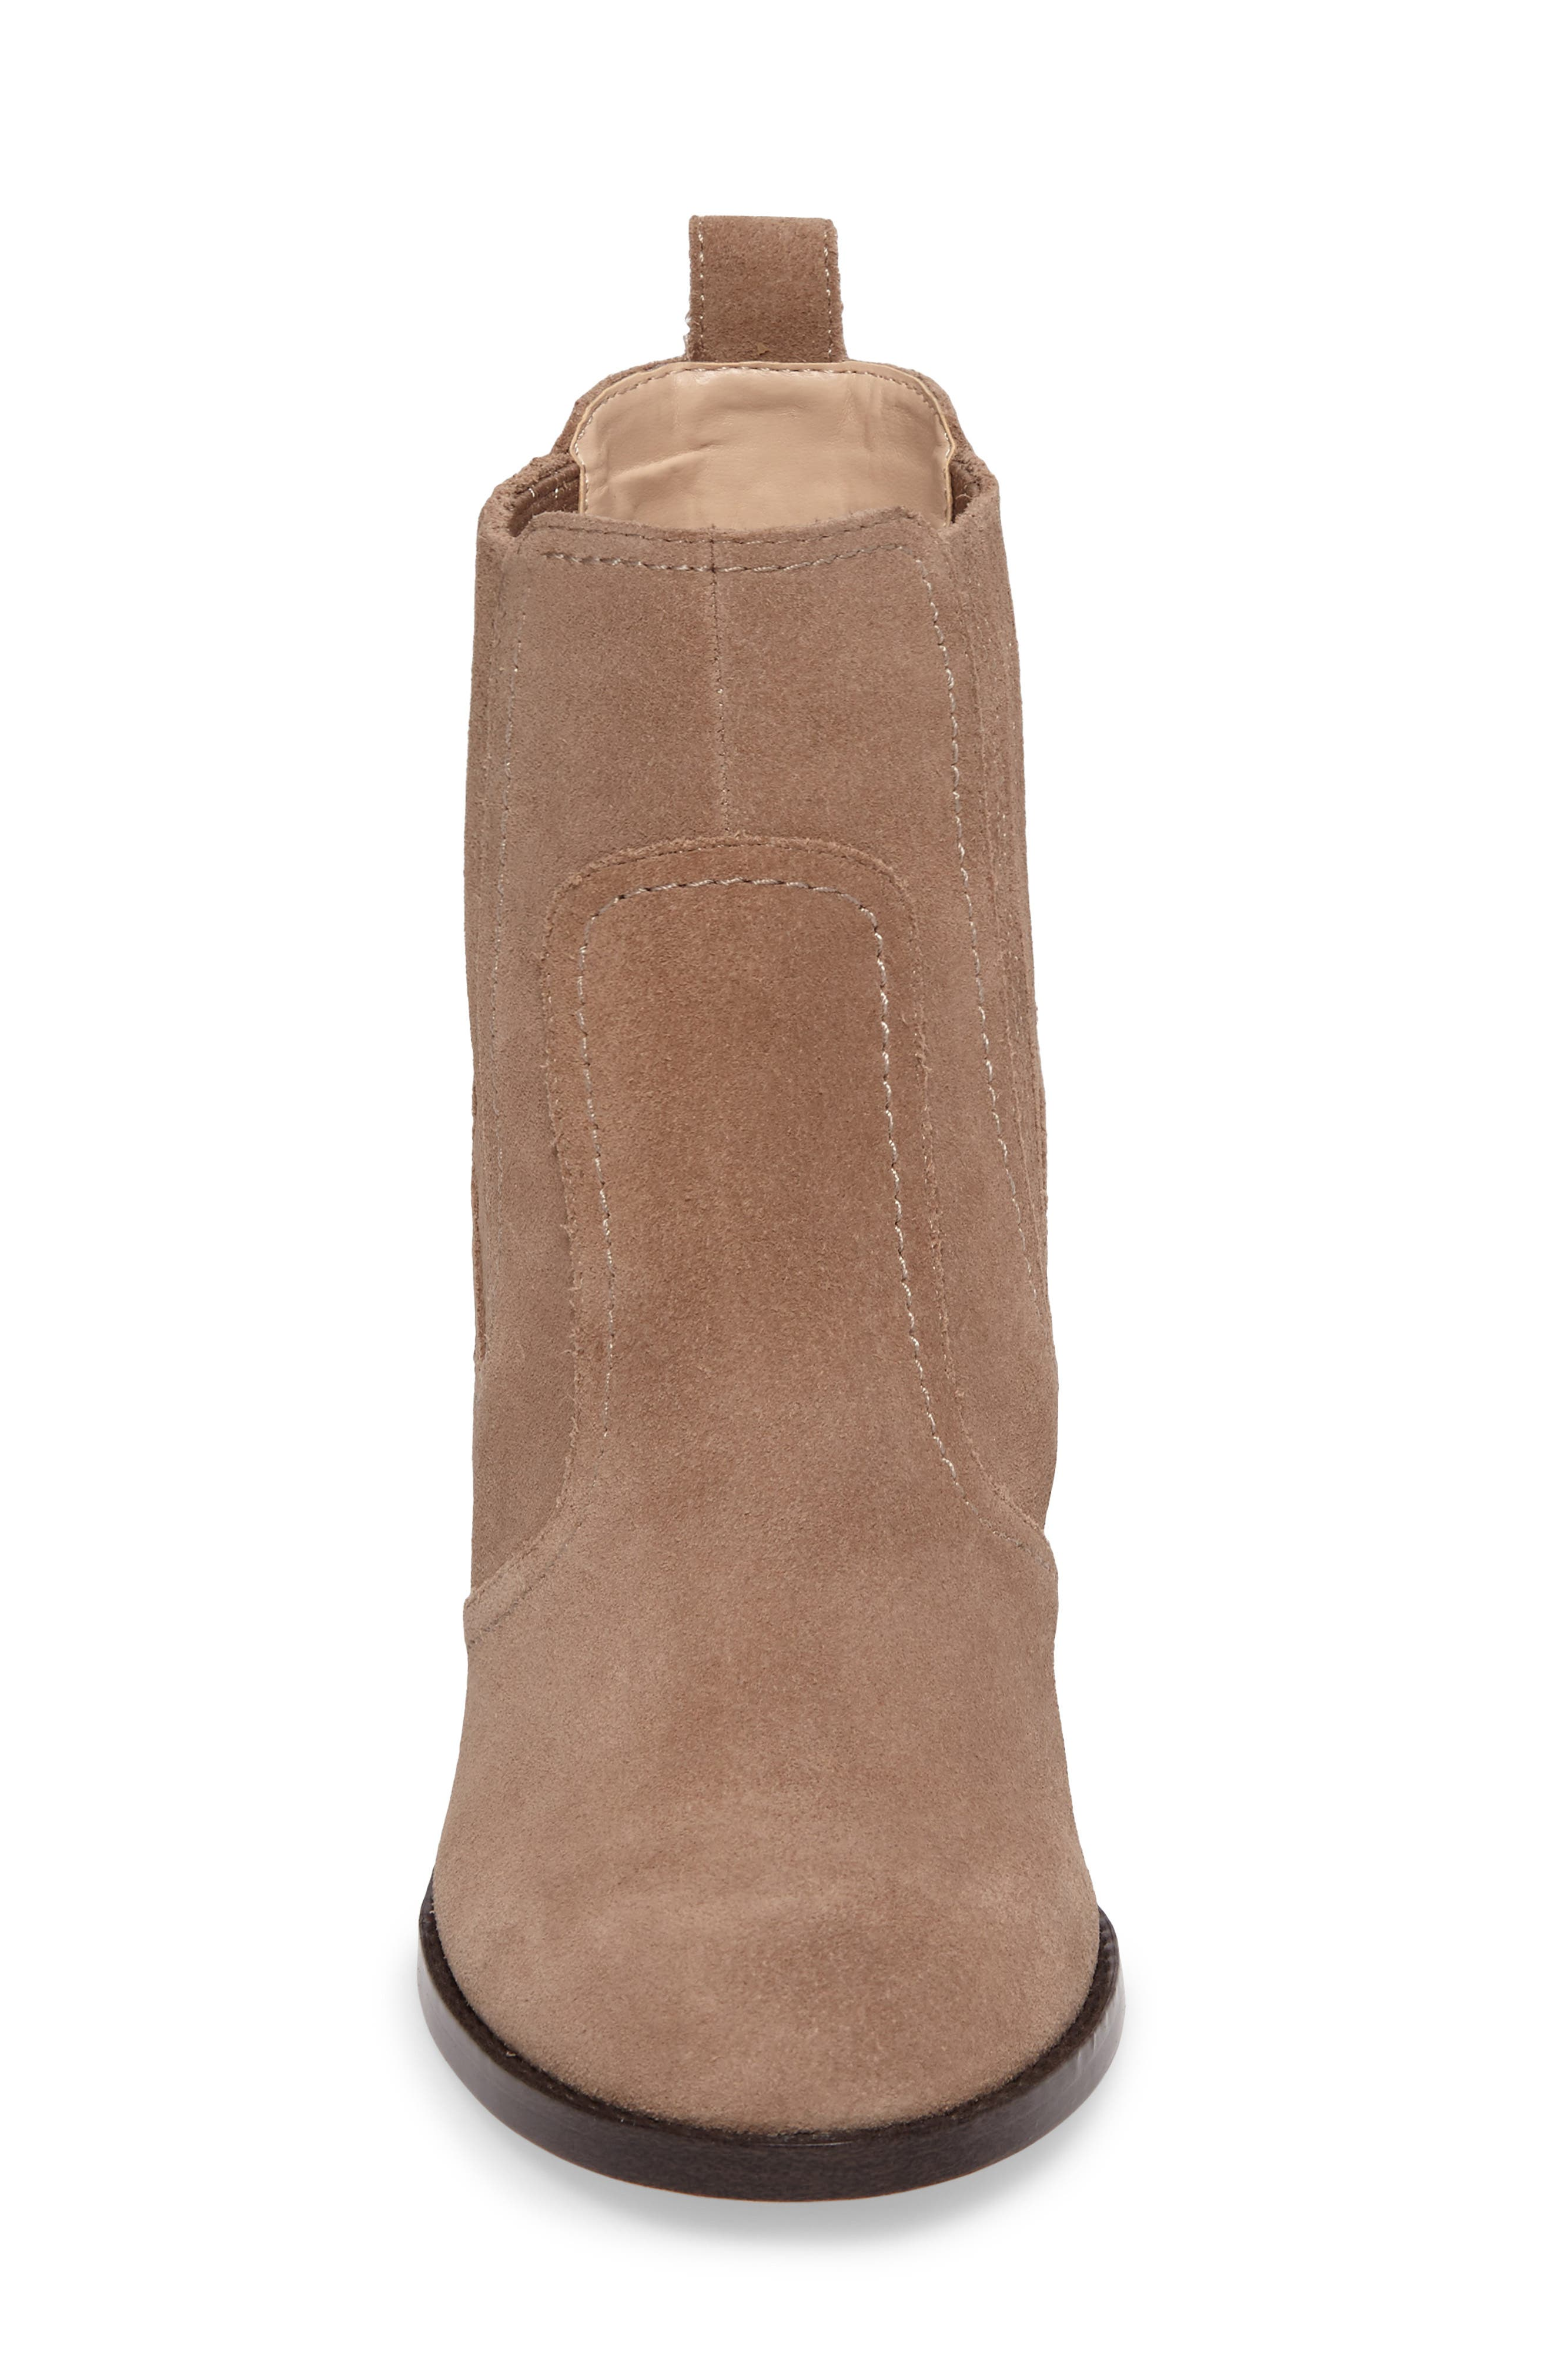 Harbor Bootie,                             Alternate thumbnail 4, color,                             Taupe